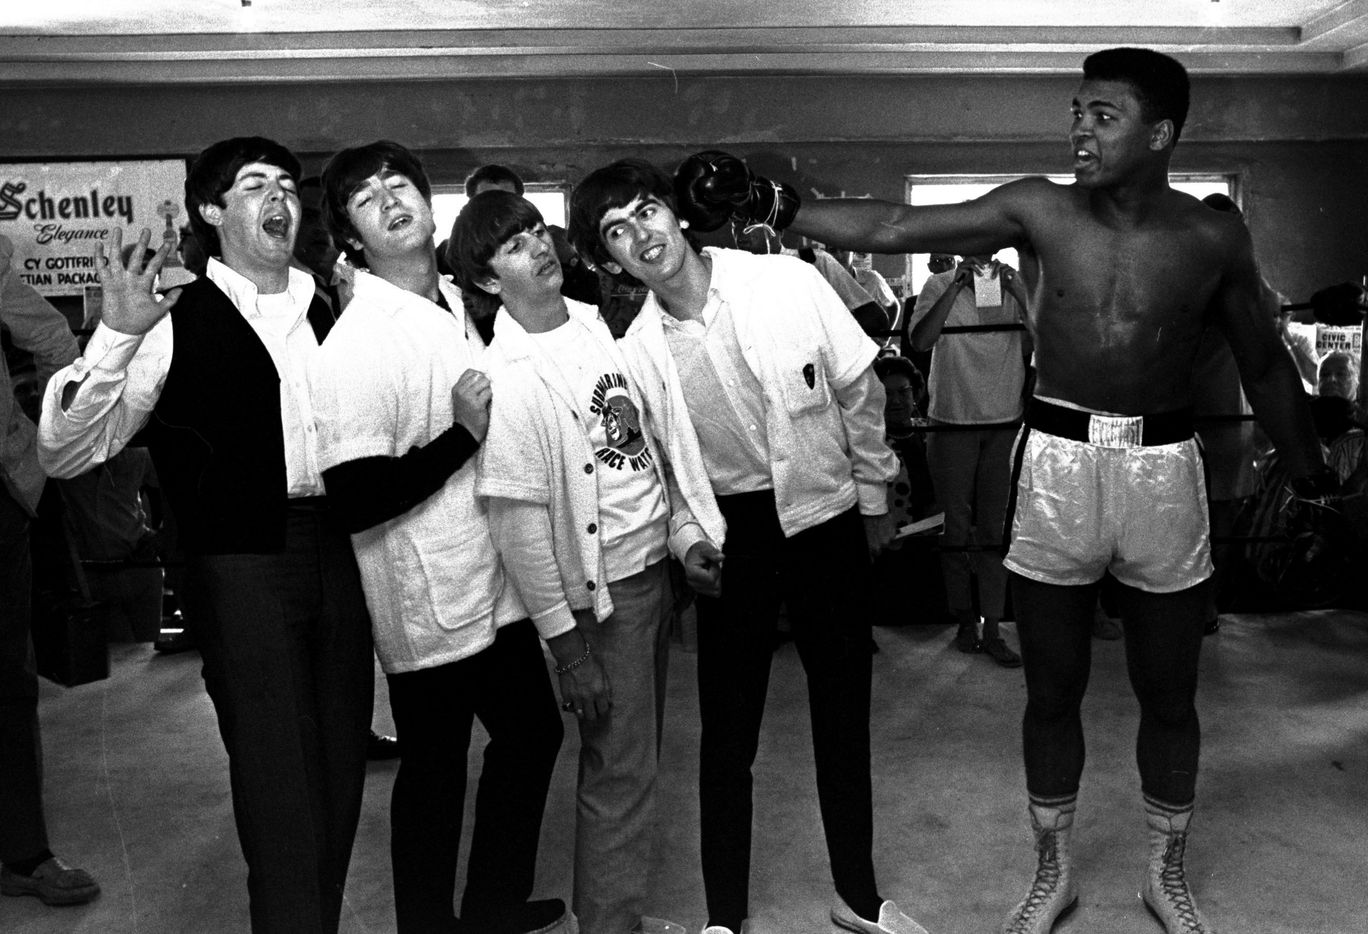 In this Feb. 18, 1964, file photo, the Beatles, from left, Paul McCartney, John Lennon, Ringo Starr, and George Harrison, take a fake blow from Cassius Clay (Muhammad Ali) while visiting the heavyweight contender at his training camp in Miami Beach, Fla.